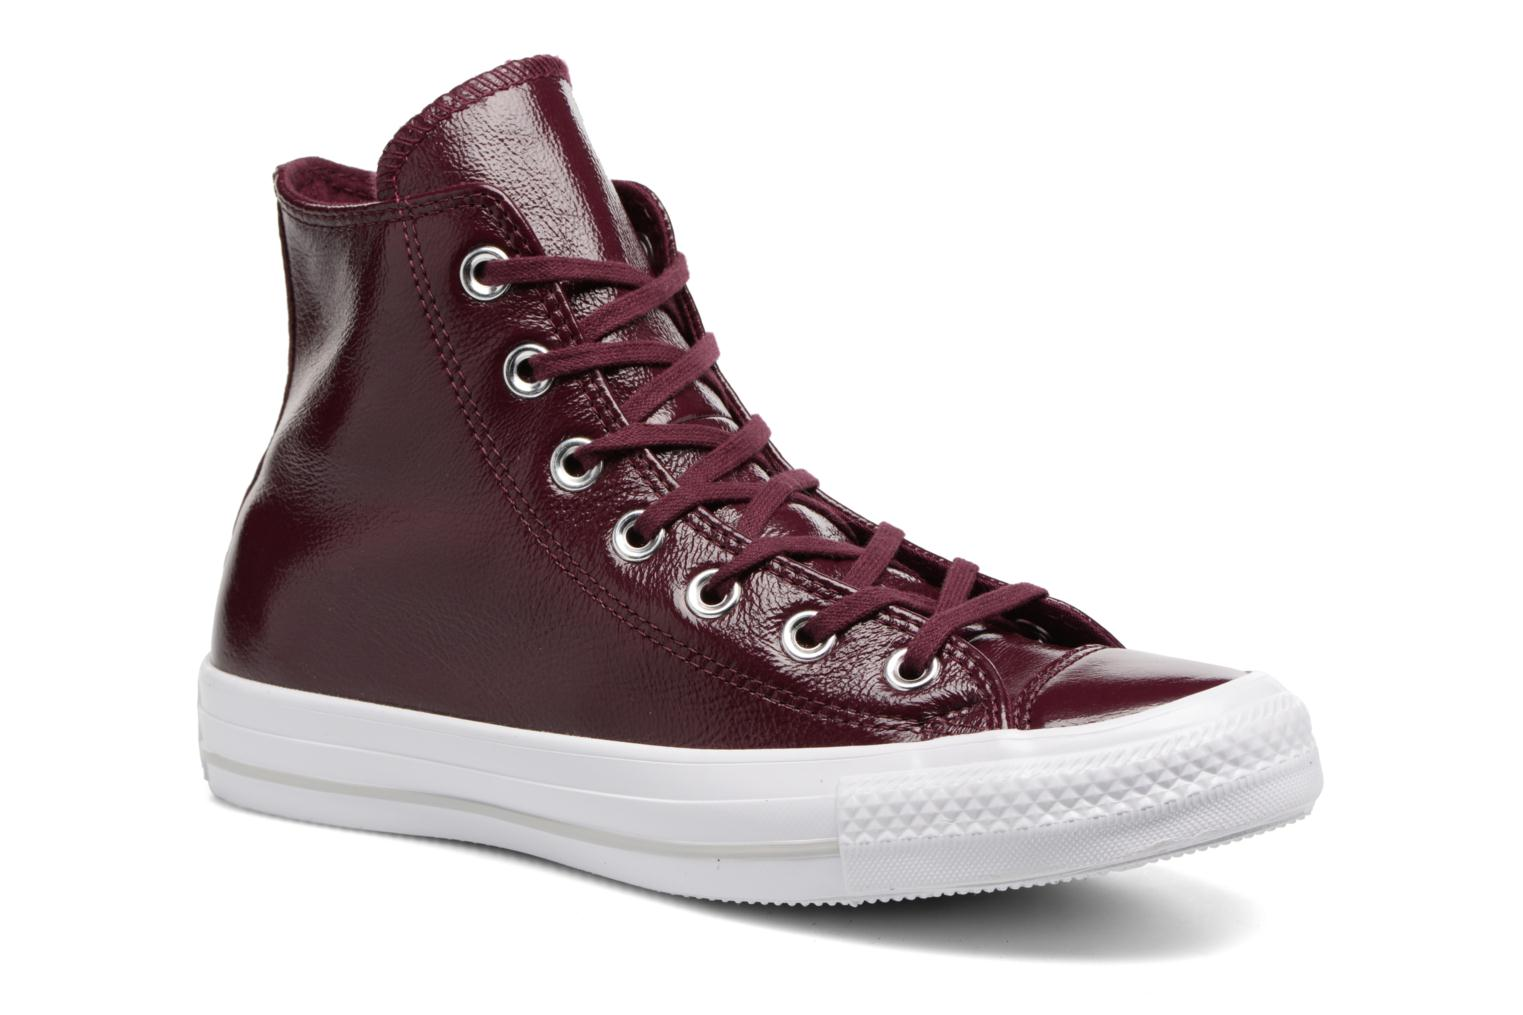 Sneakers Converse Chuck Taylor All Star Crinkled Patent Leather Hi Bordeaux detail